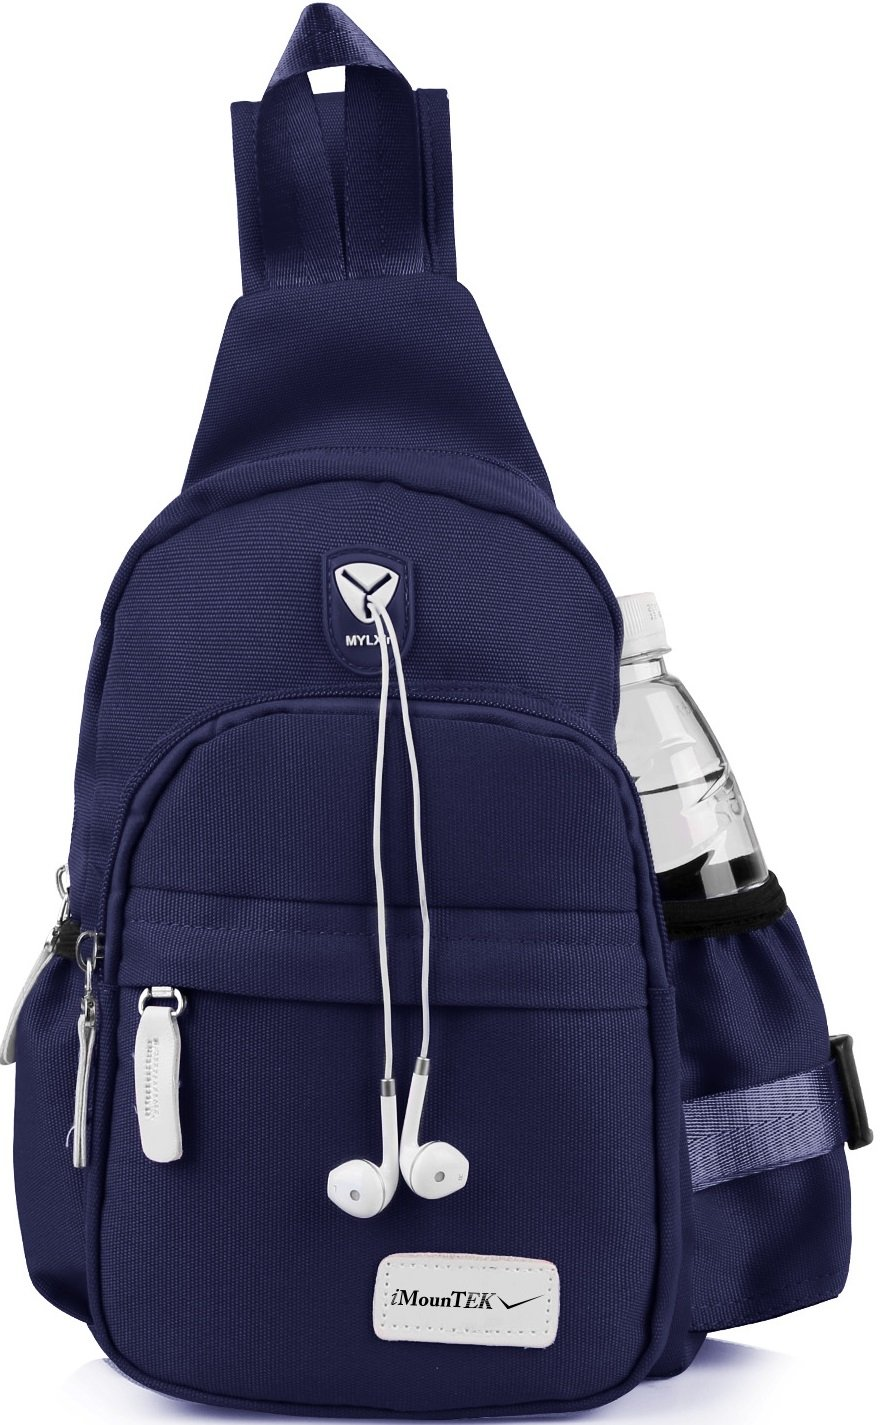 GPCT Nylon Crossbody Shoulder Chest Sling Bag Daily Travel Backpack (Blue) by GPCT (Image #4)